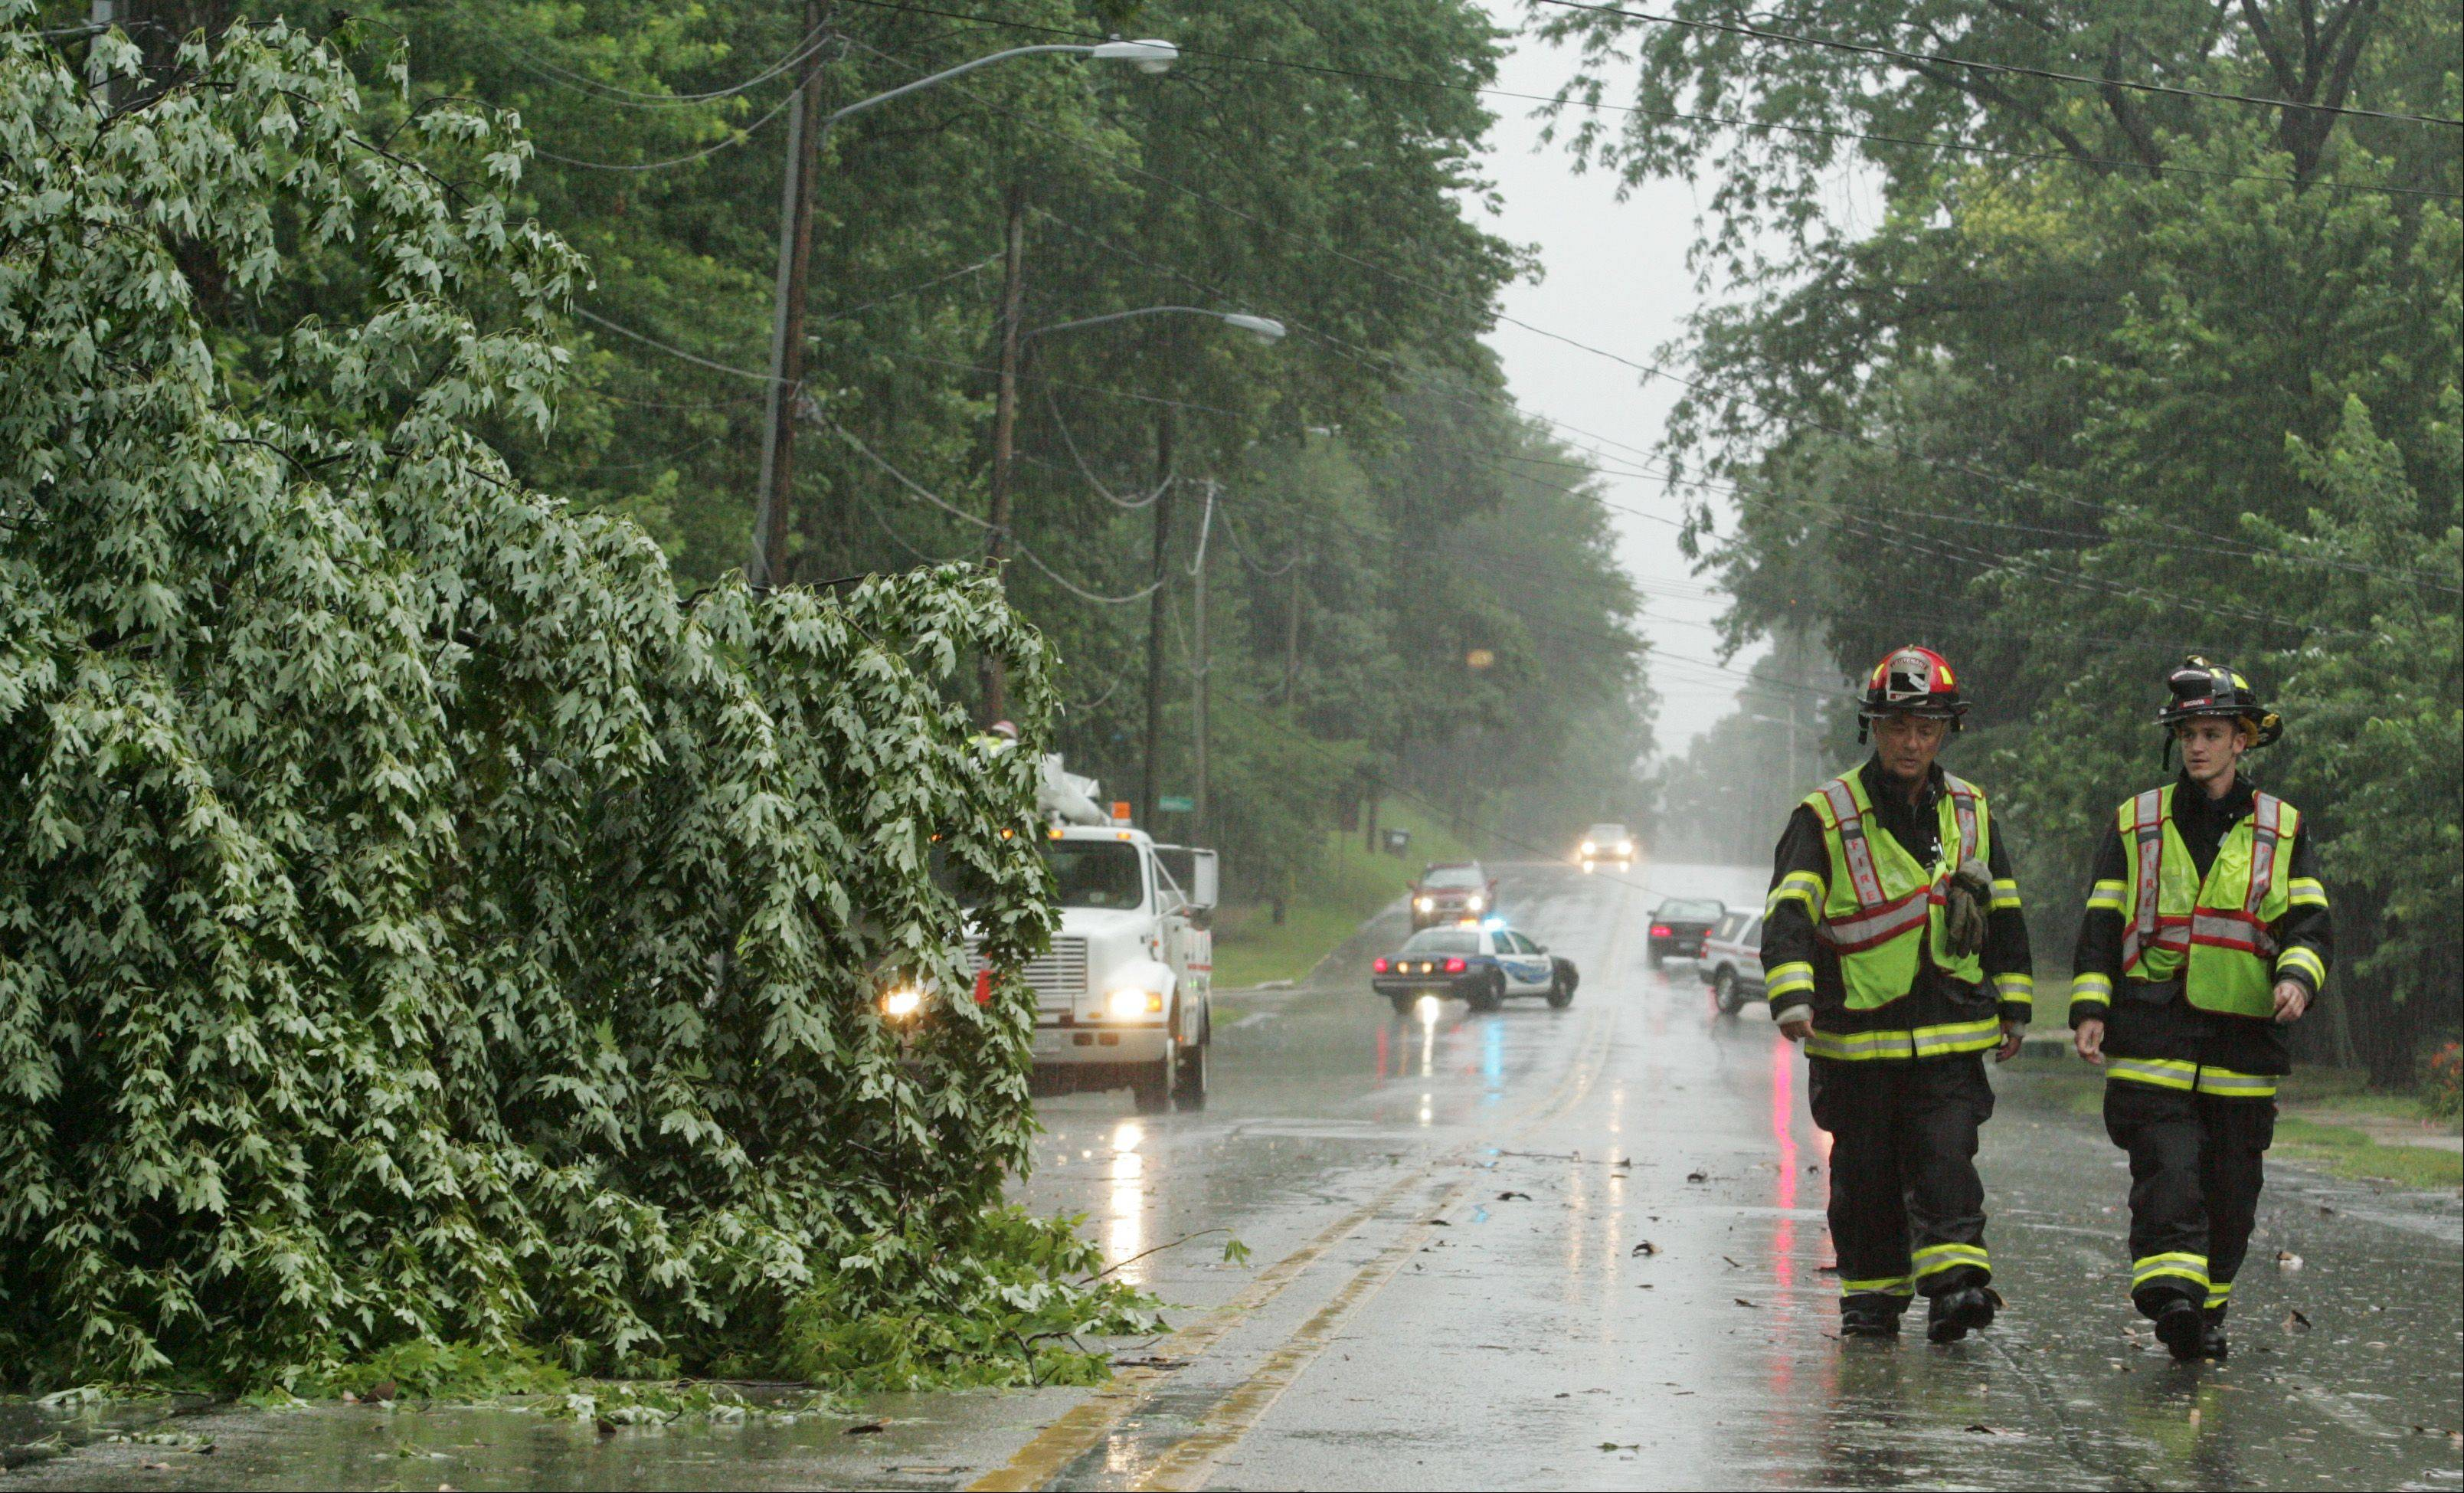 Batavia firefighters Lt. Jamie White, left, and Chris LaFleur survey the scene where a large tree came down in Friday morning�s storm, shutting down traffic about 10 a.m. along Batavia Avenue (Route 31) near McKee Street.